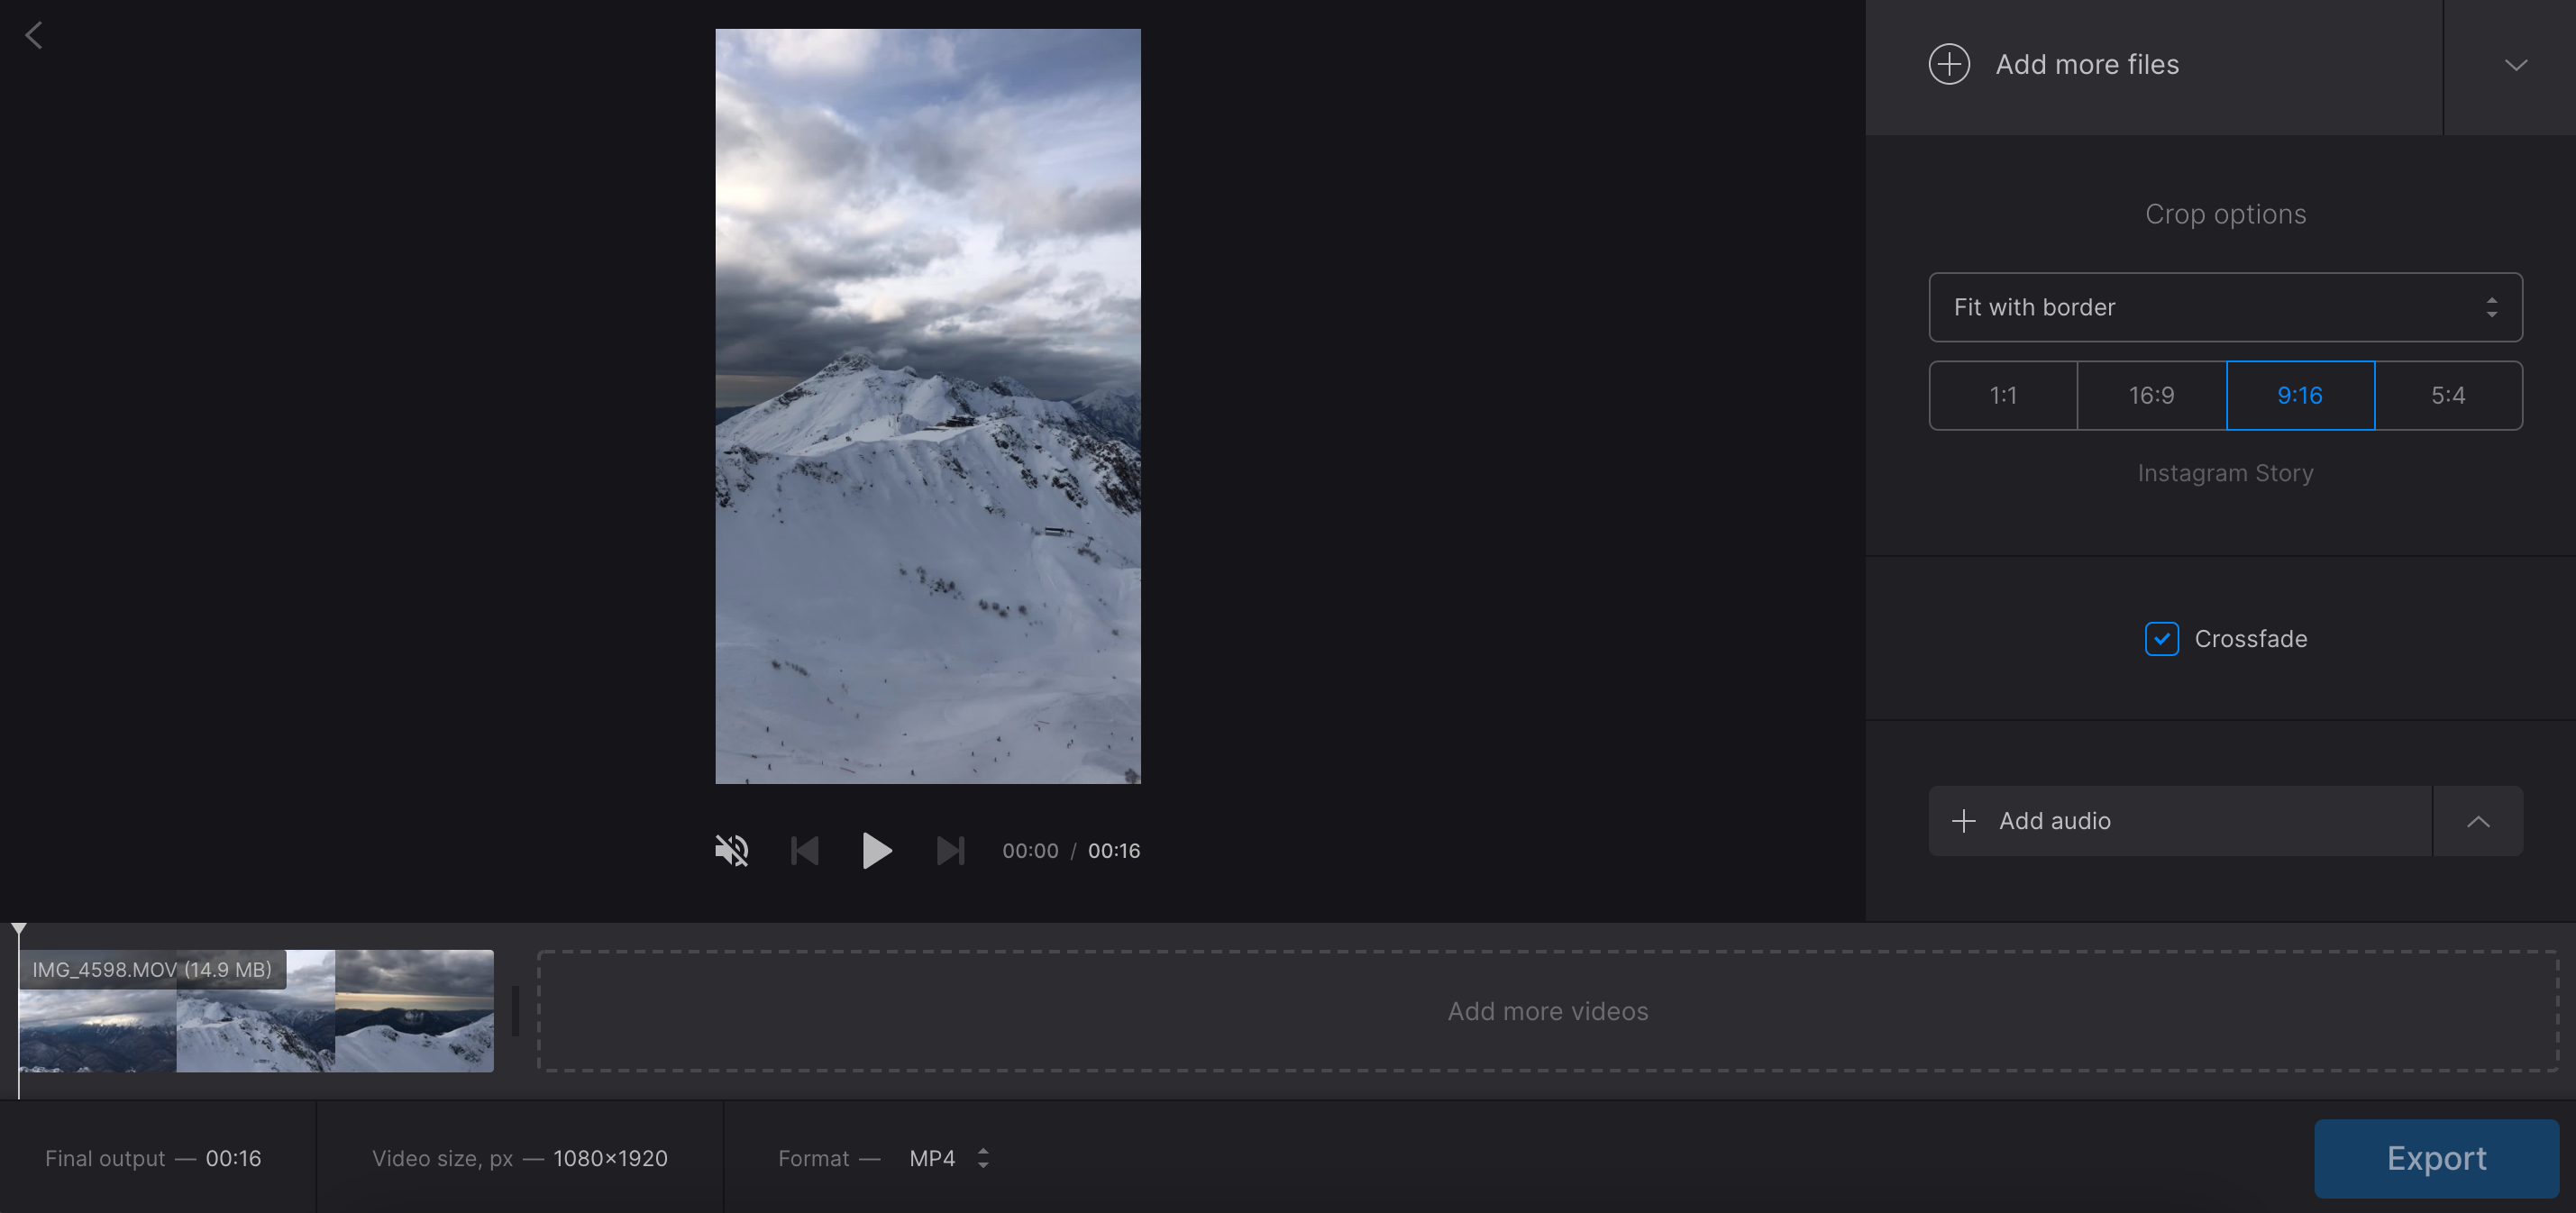 Add more videos and adjust video mashup settings